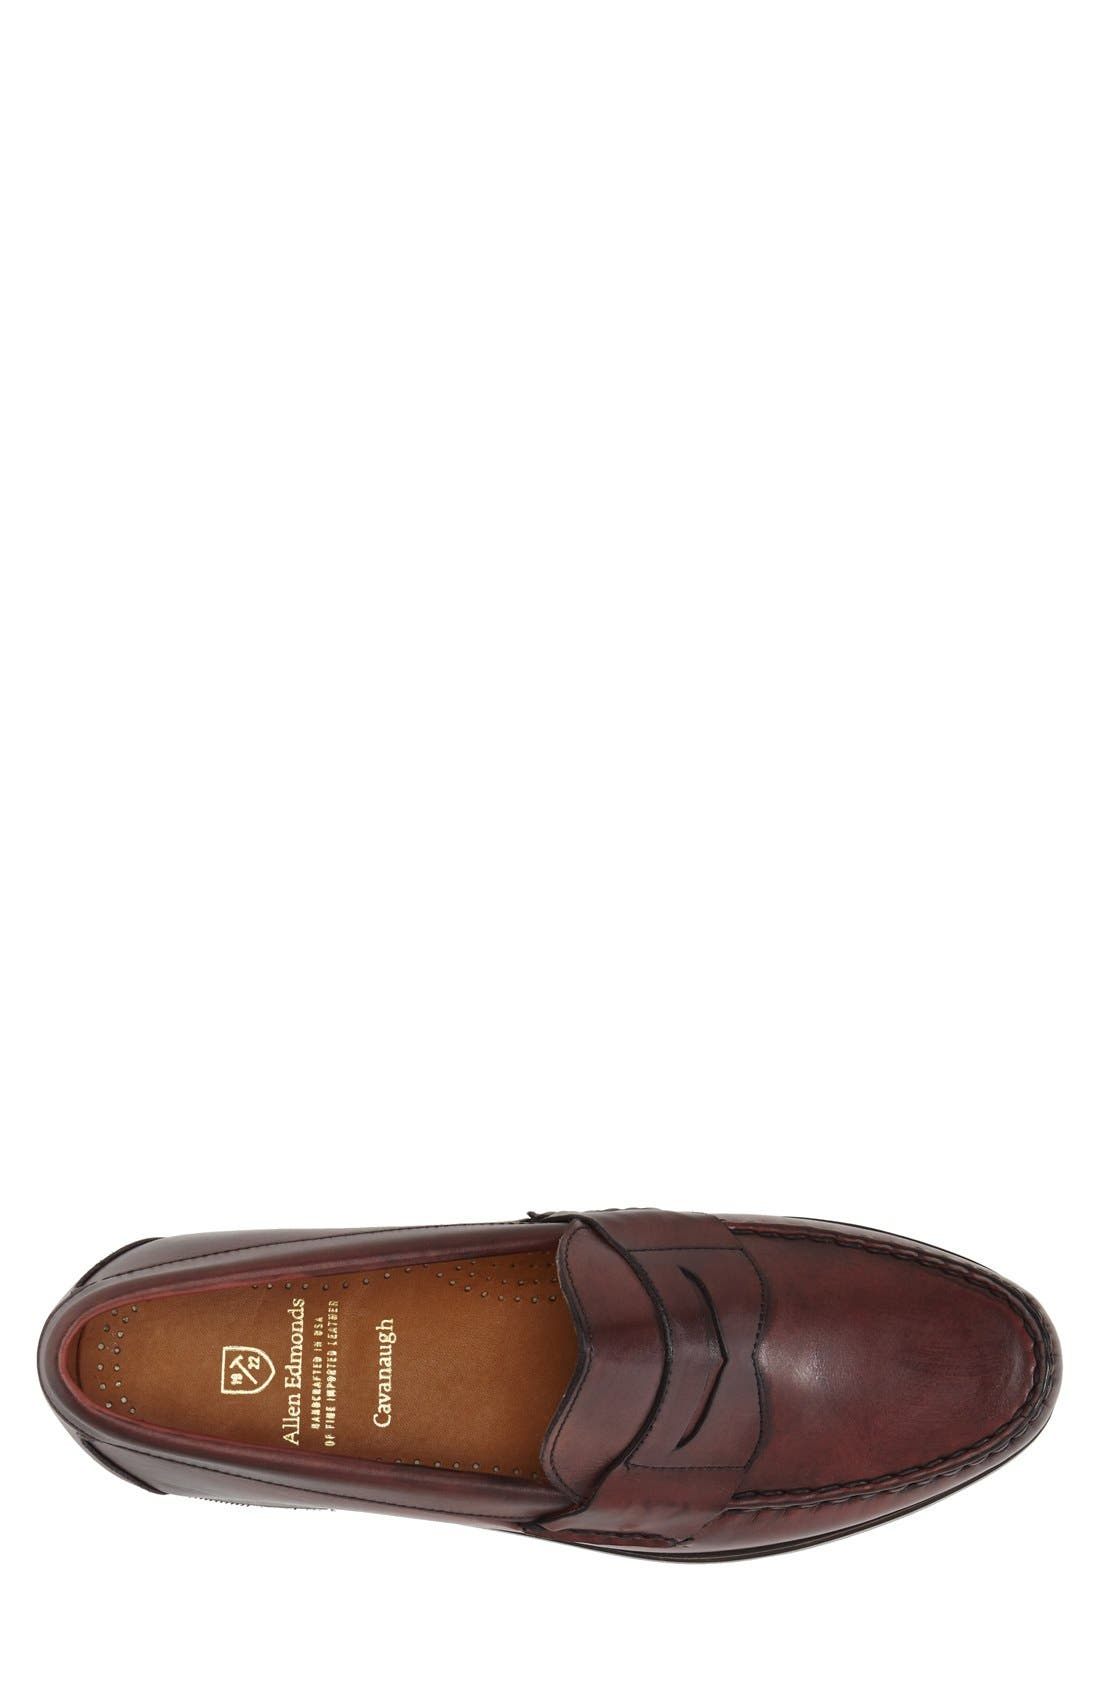 Alternate Image 3  - Allen Edmonds 'Cavanaugh' Penny Loafer (Men)